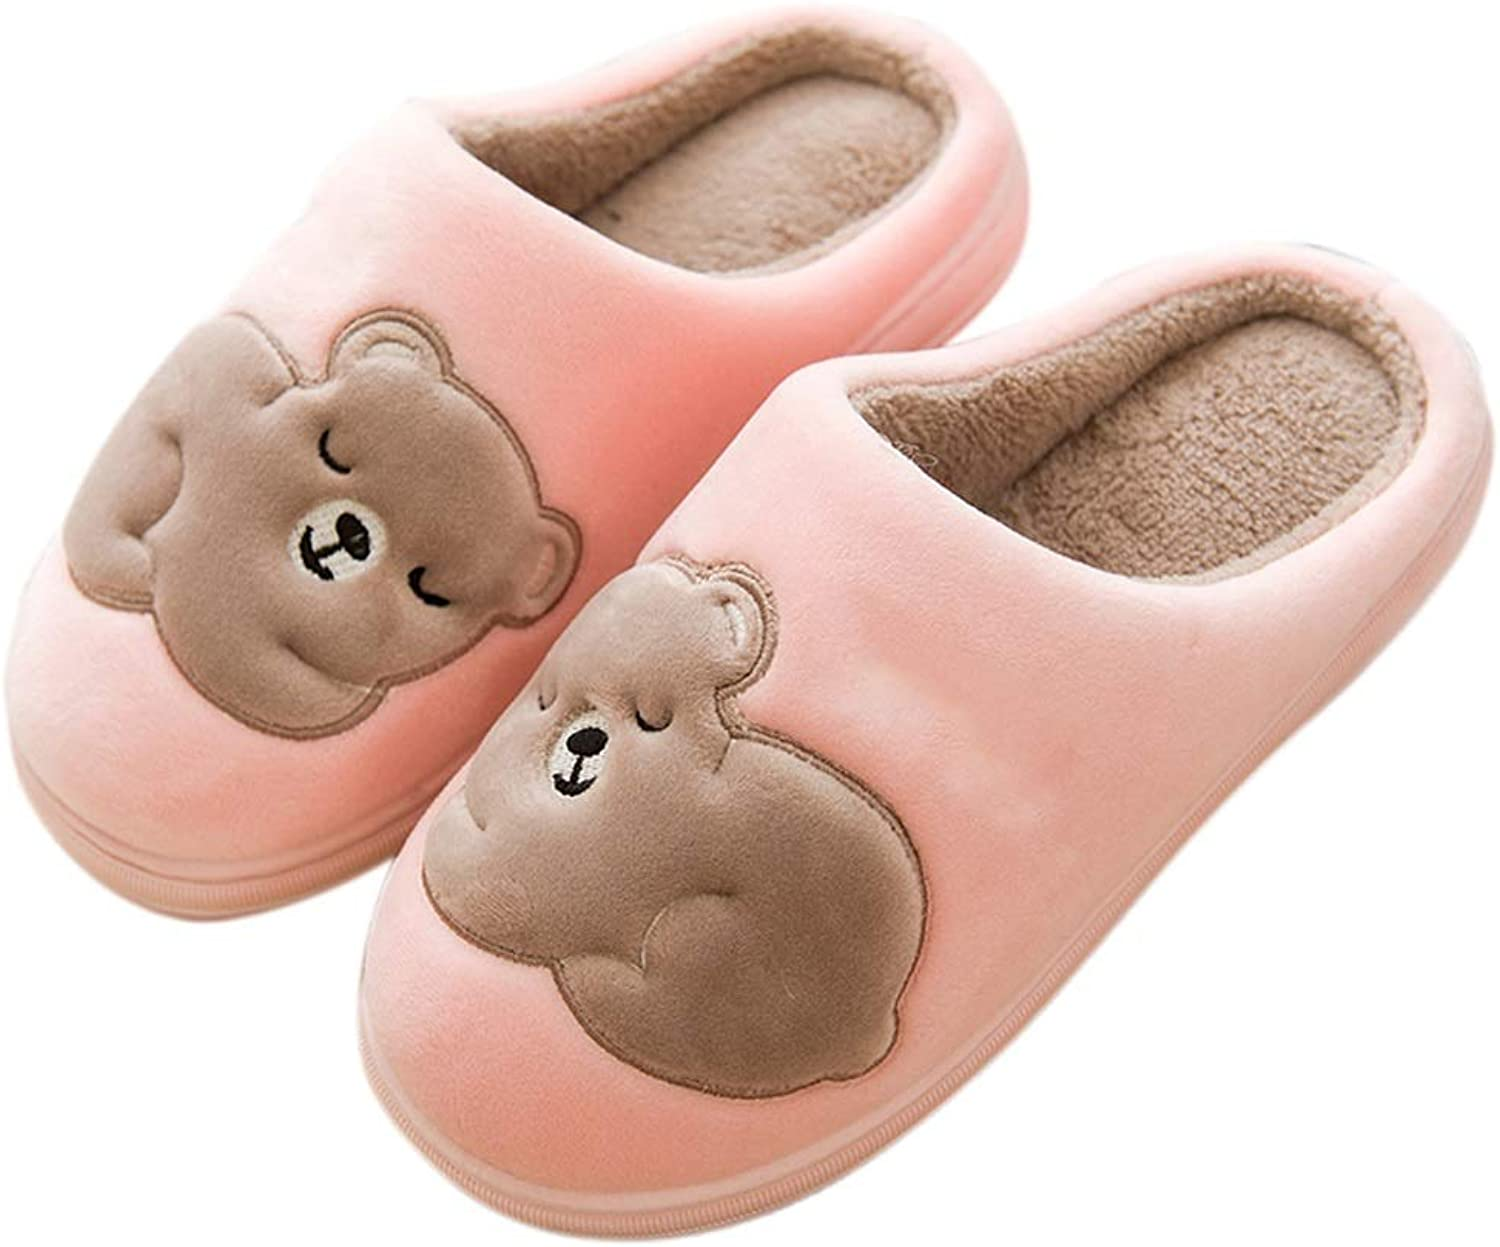 HUYP Pink Cute Cotton Slippers Home Bedroom Wood Floor Skid Autumn and Winter (Size   37)